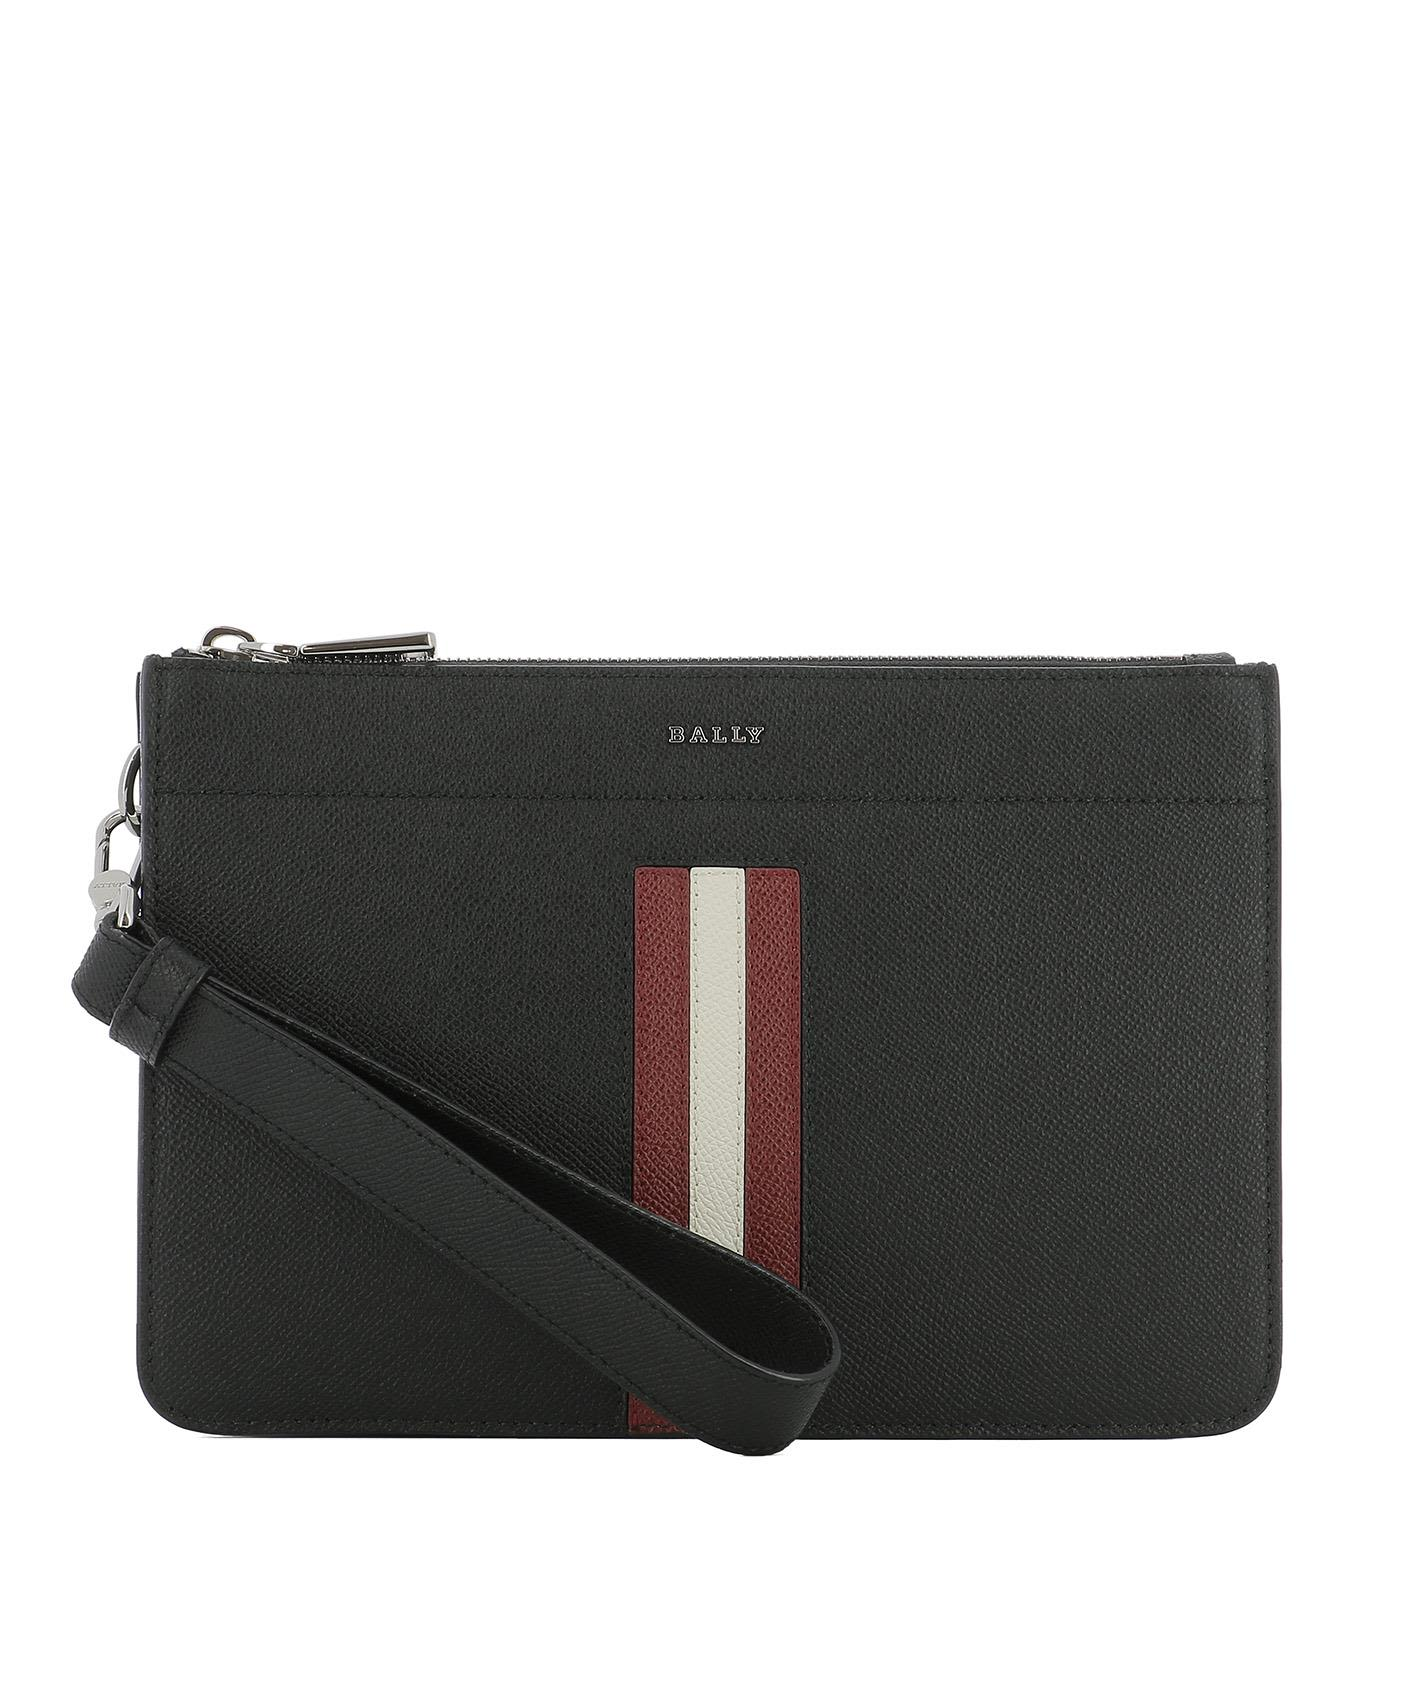 BALLY BLACK LEATHER POCHETTE